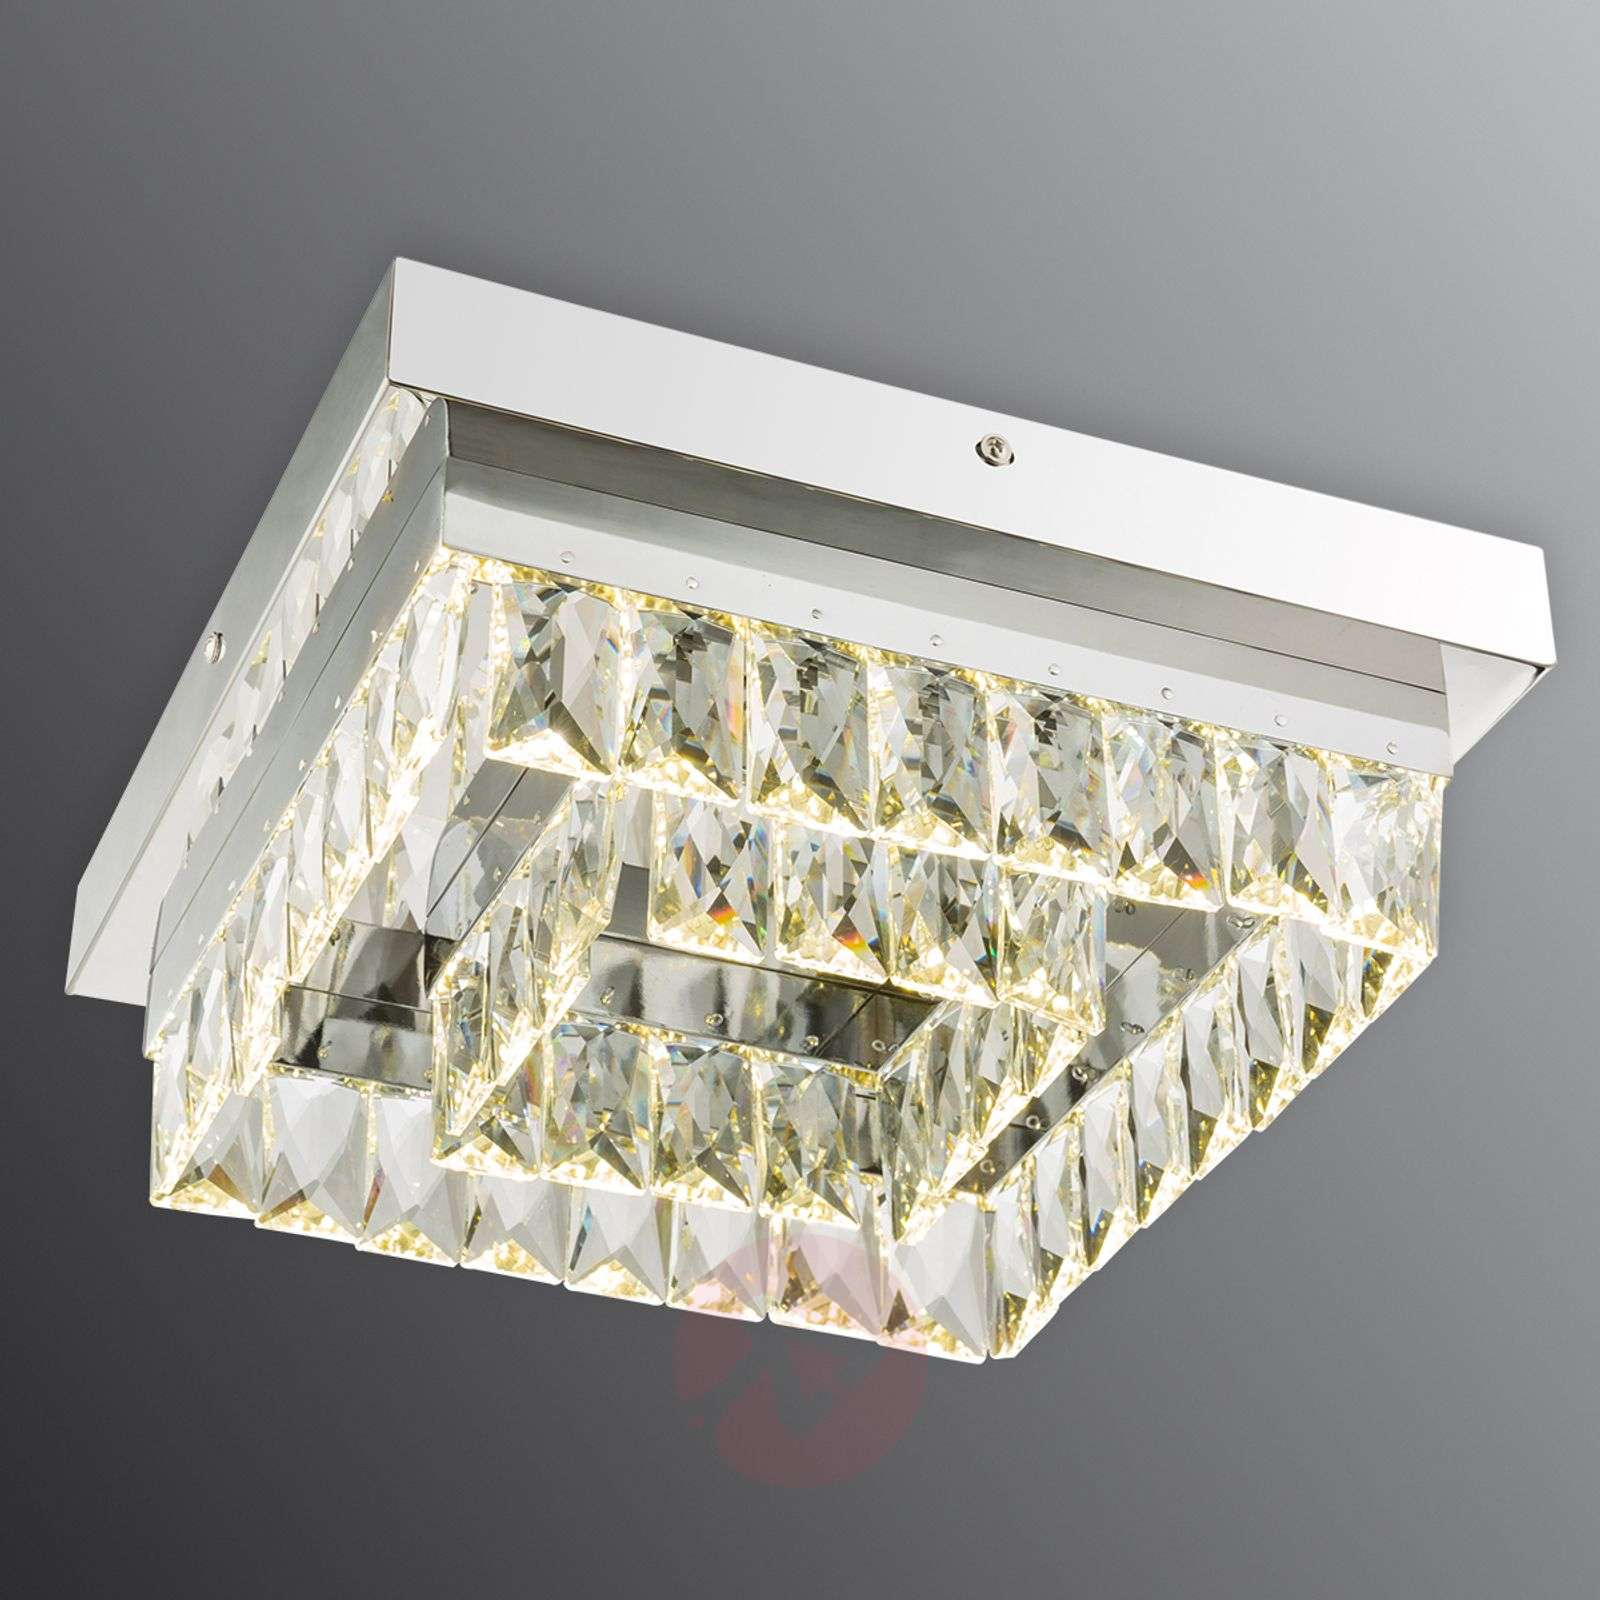 Plafoniera Quadrata : Acquista plafoniera quadrata febe led cristallo 30 cm lampade.it